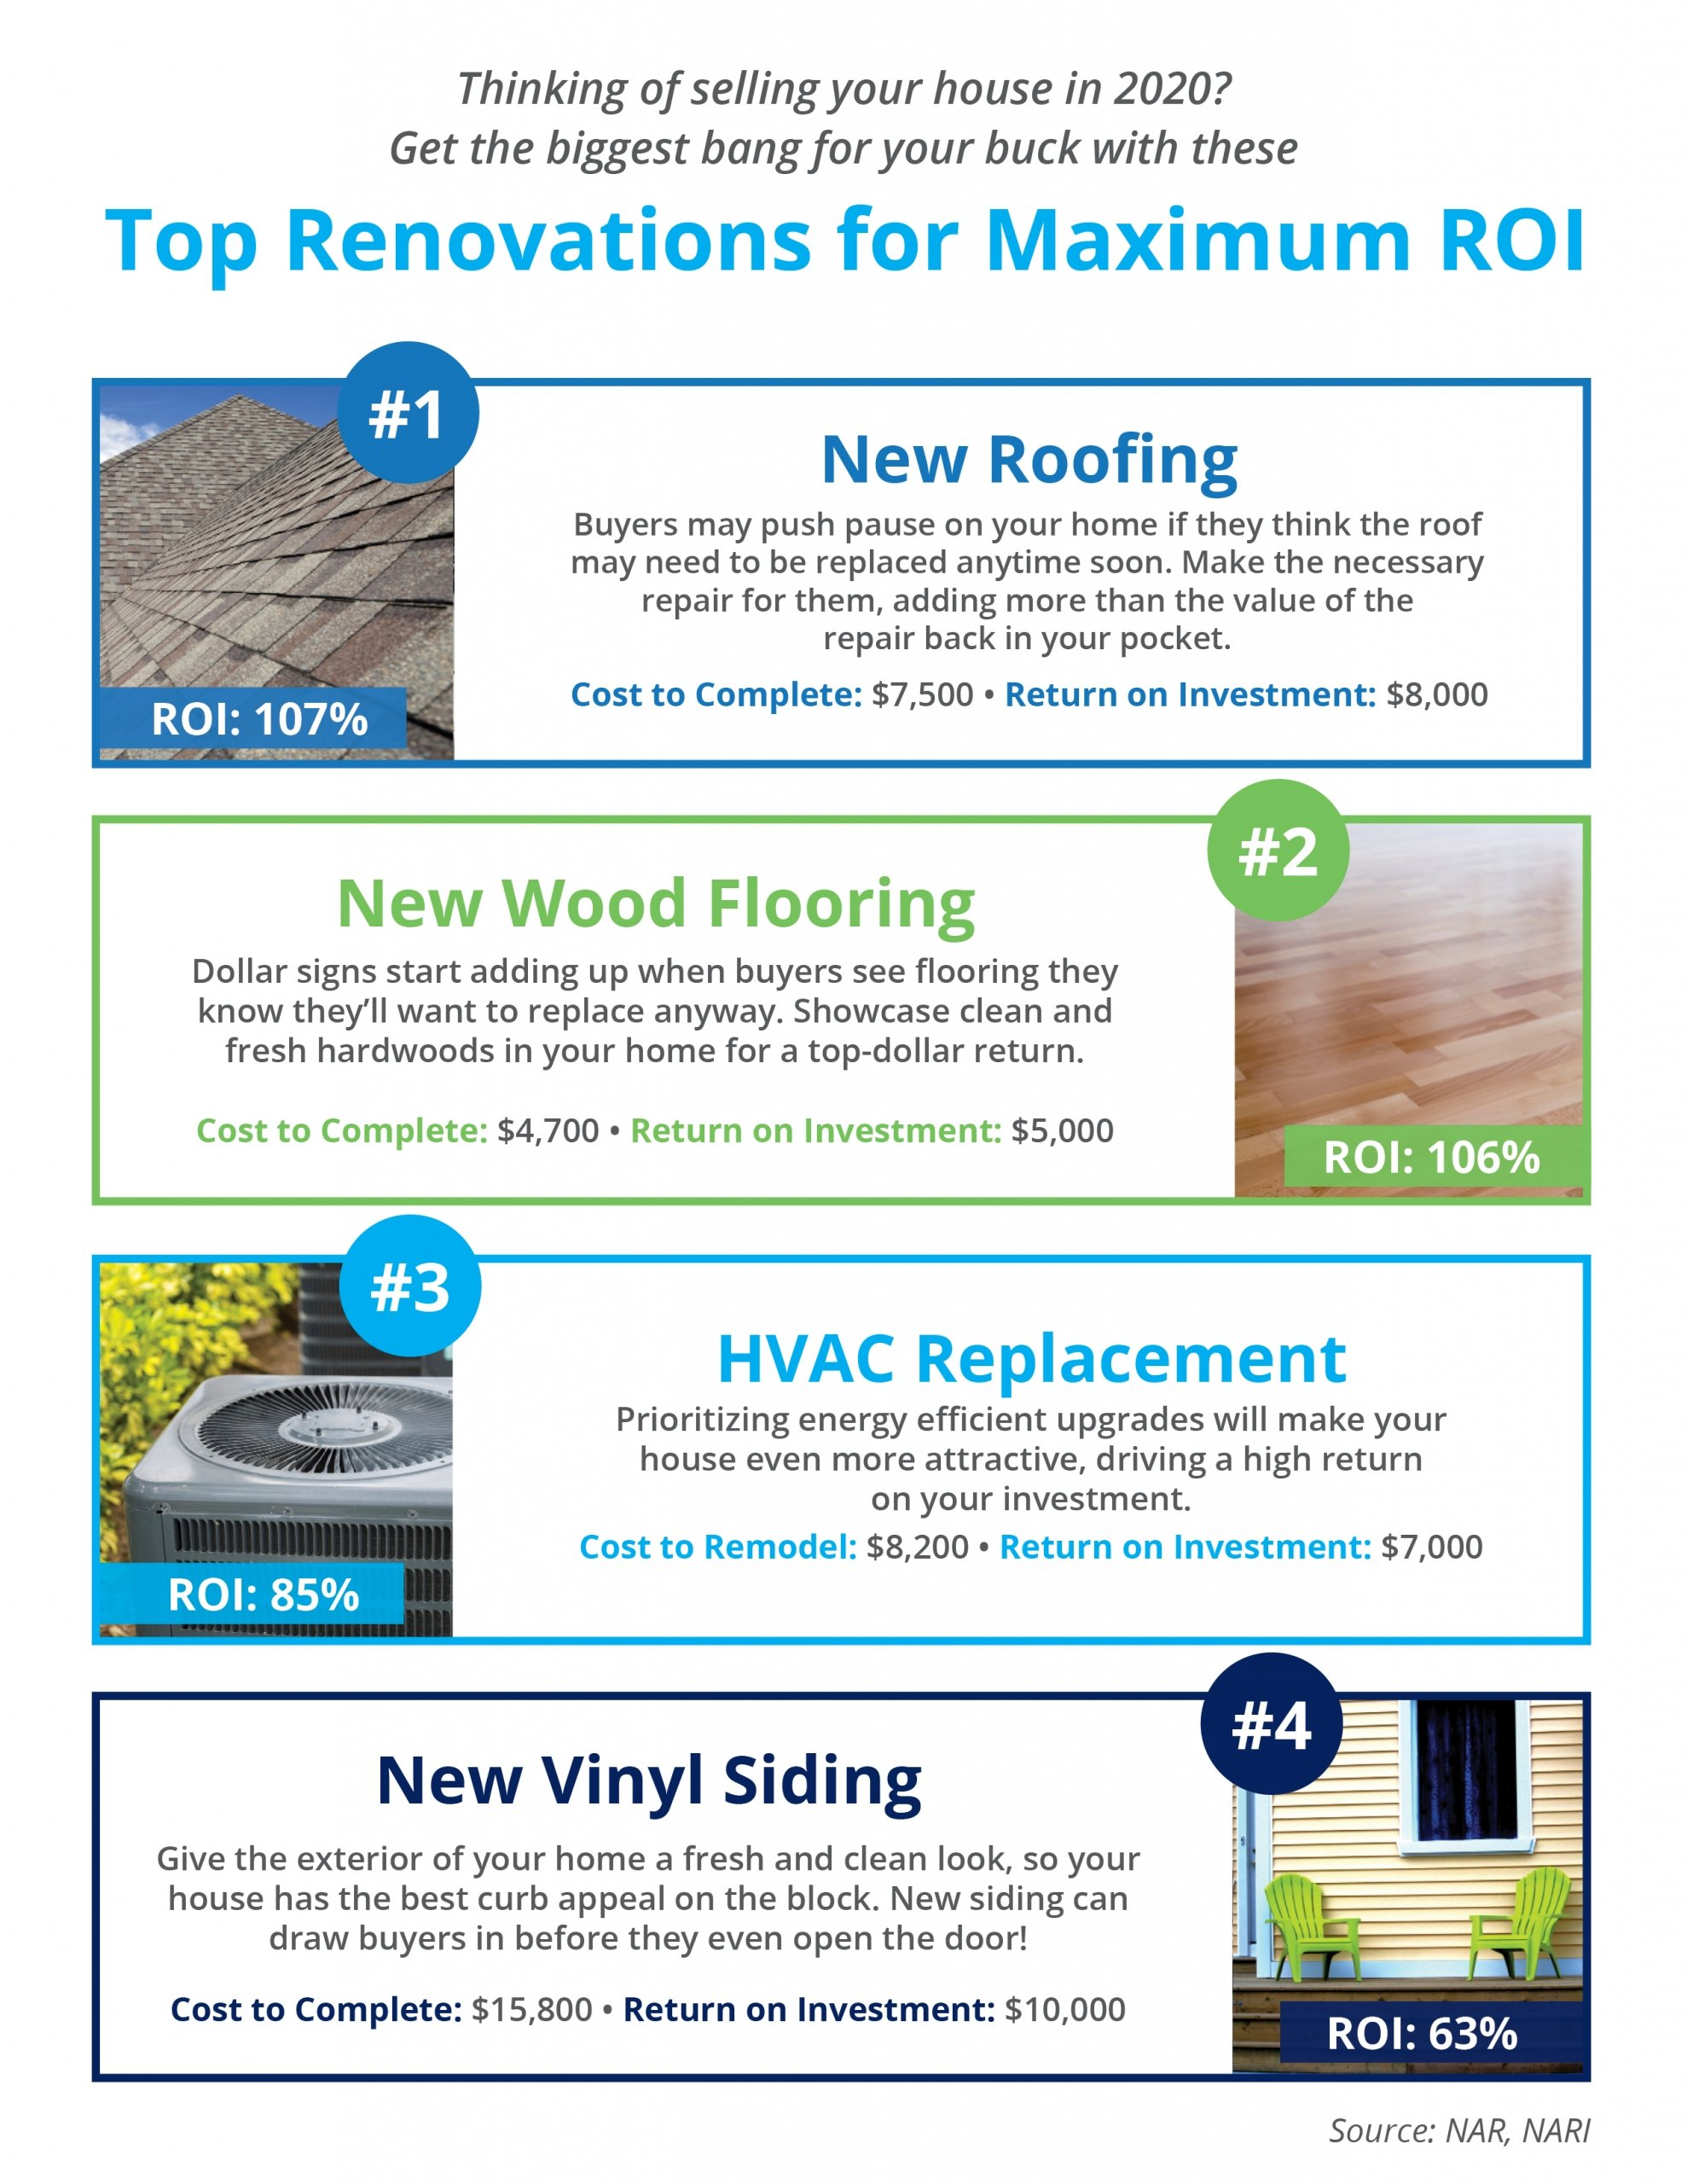 Top Renovations for Maximum ROI [INFOGRAPHIC]   Simplifying The Market